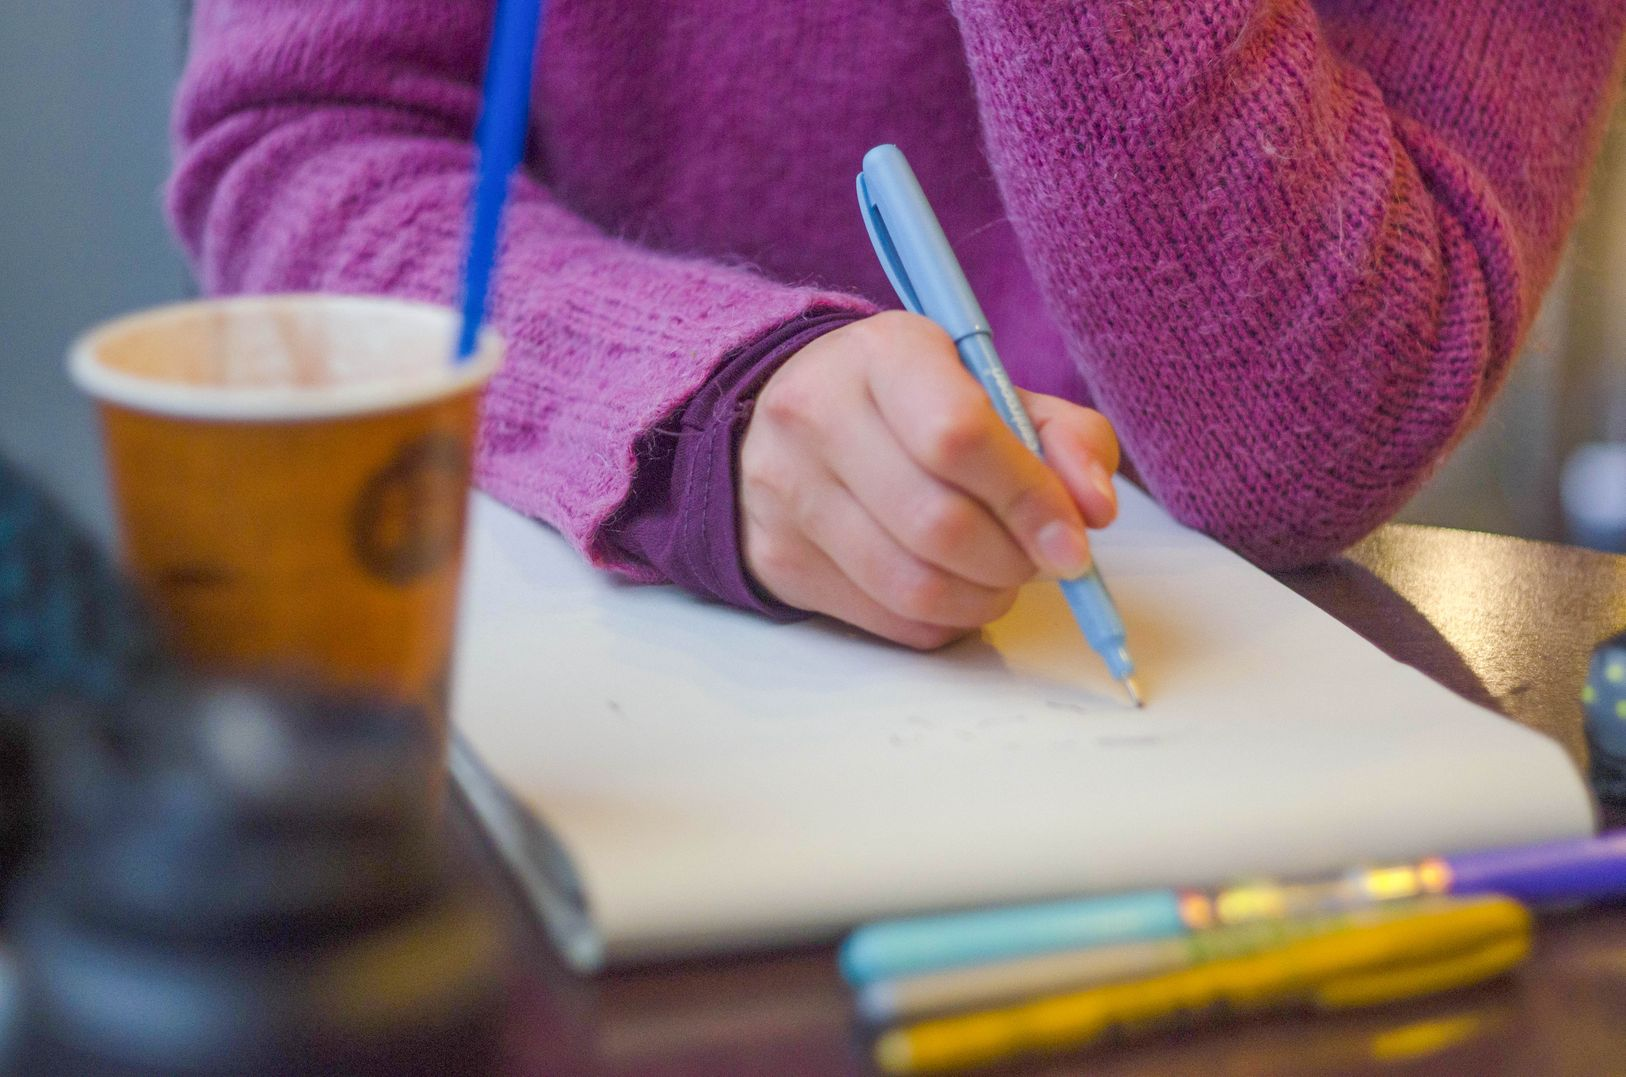 Woman in violet sweater writing on a notebook to indicate creating a to-do list to help her stop procrastinating